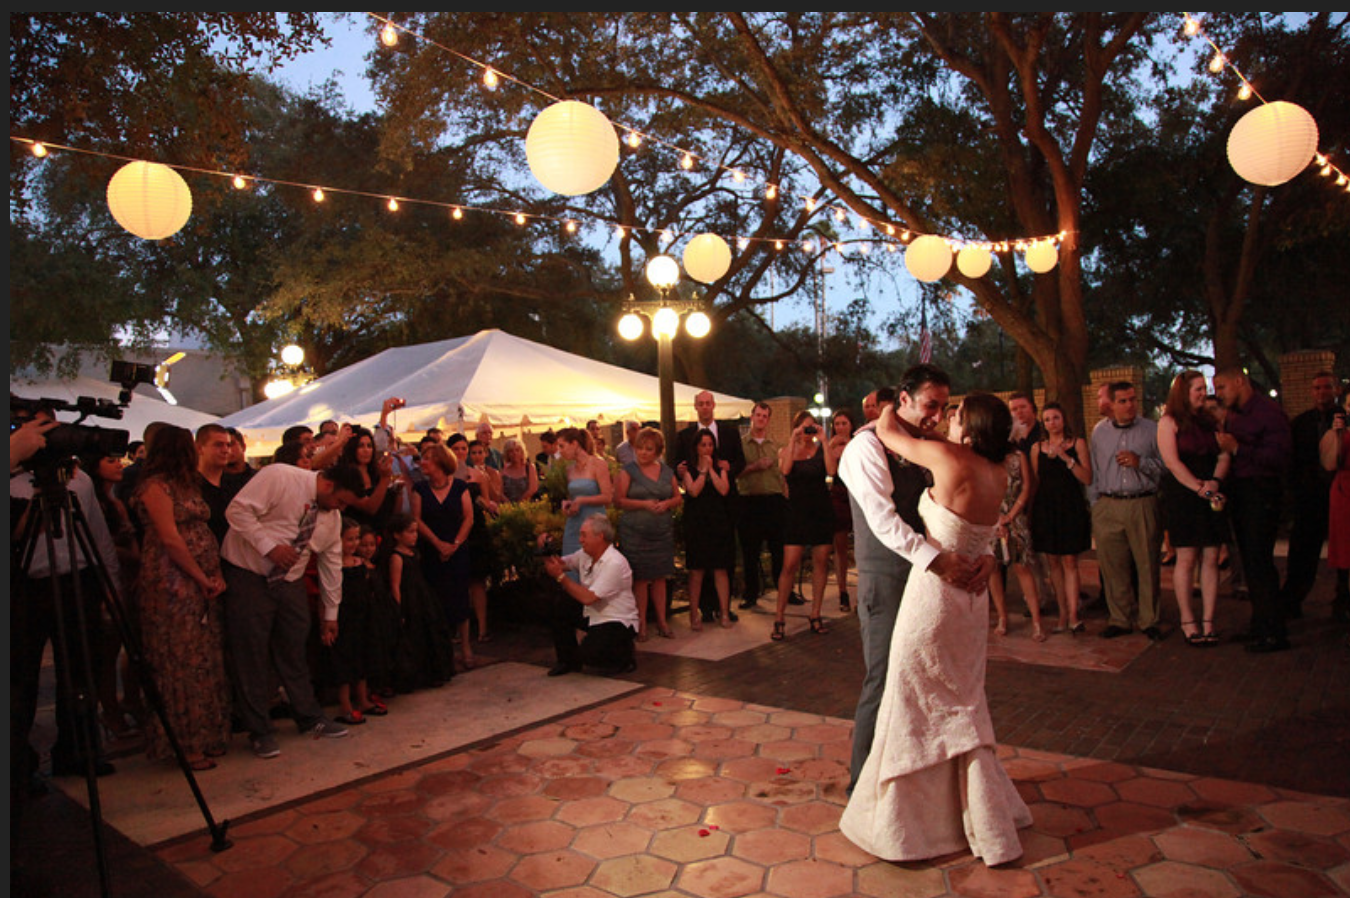 Ybor City Museum State Park Is Unique Outdoor Wedding Or Corporate Event E In Tampa